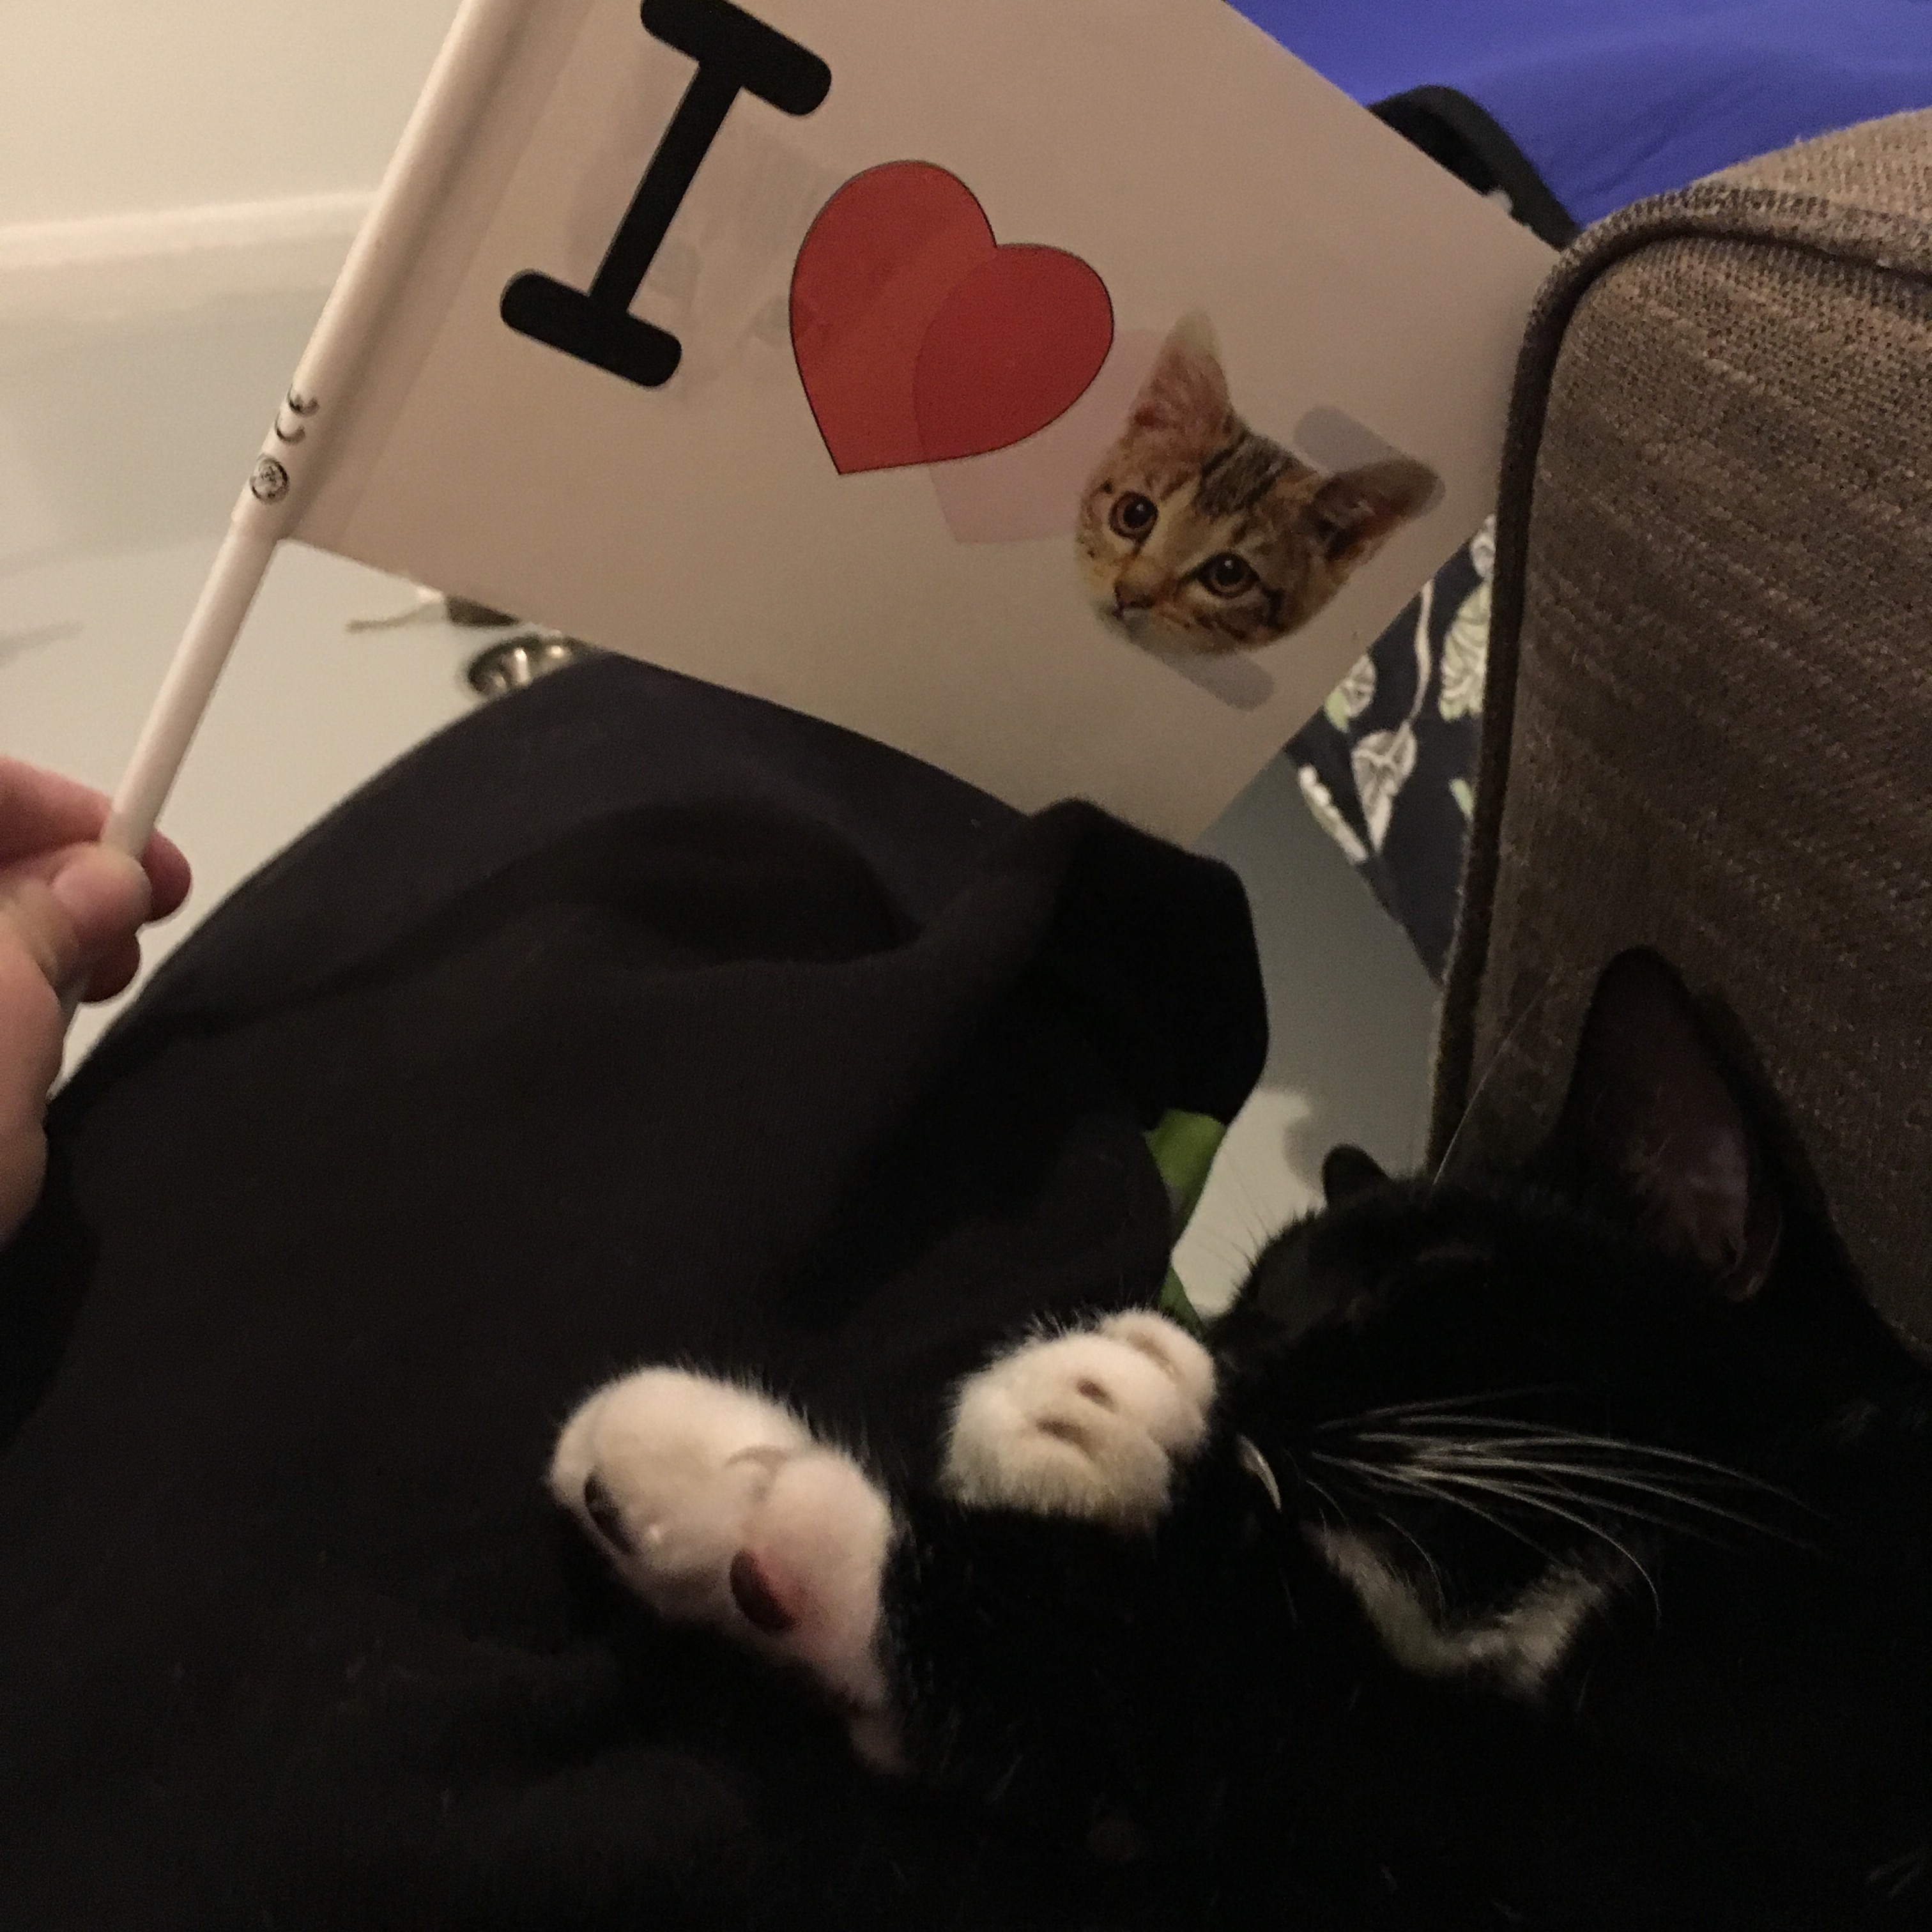 Image of Monkey the Cat lying comfortably next to a flag that reads I Heart and an image of a cat's face